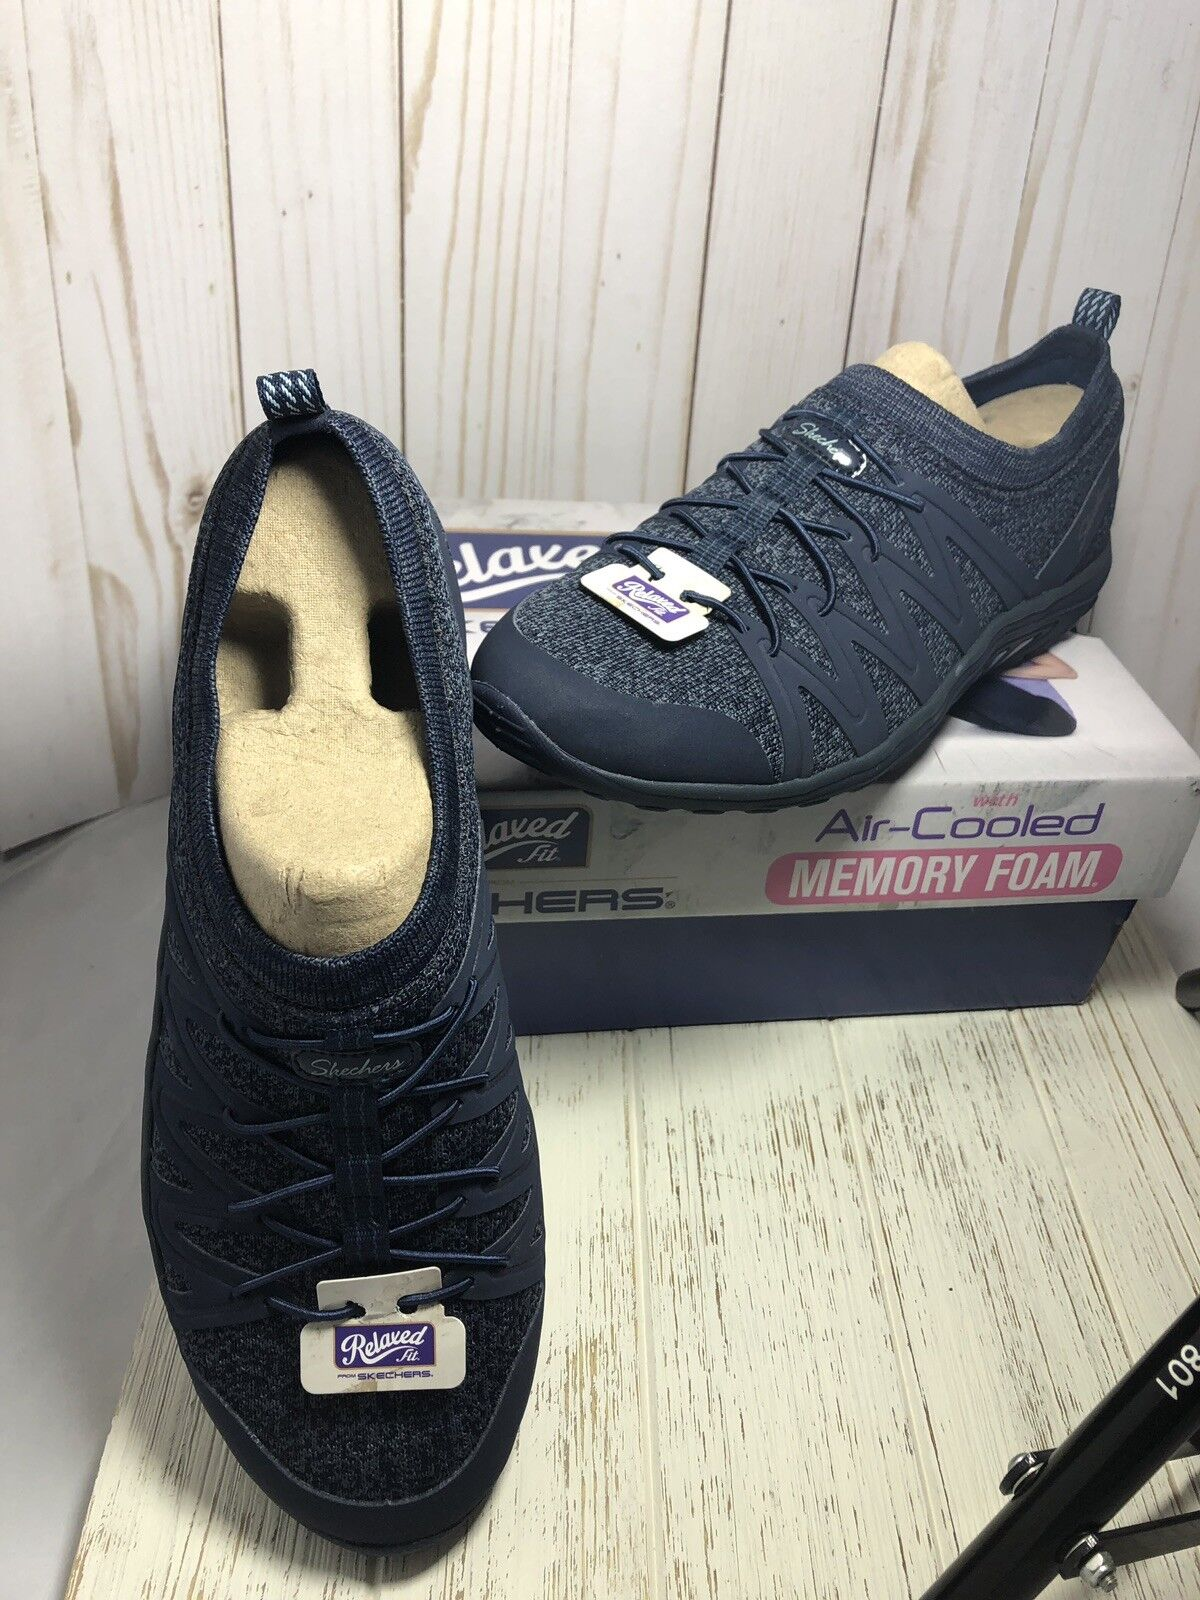 Skechers Relaxed Fit With Air Cooled Memory Foam Navy Day Day Day Blaze Größe 9 New f2fa05